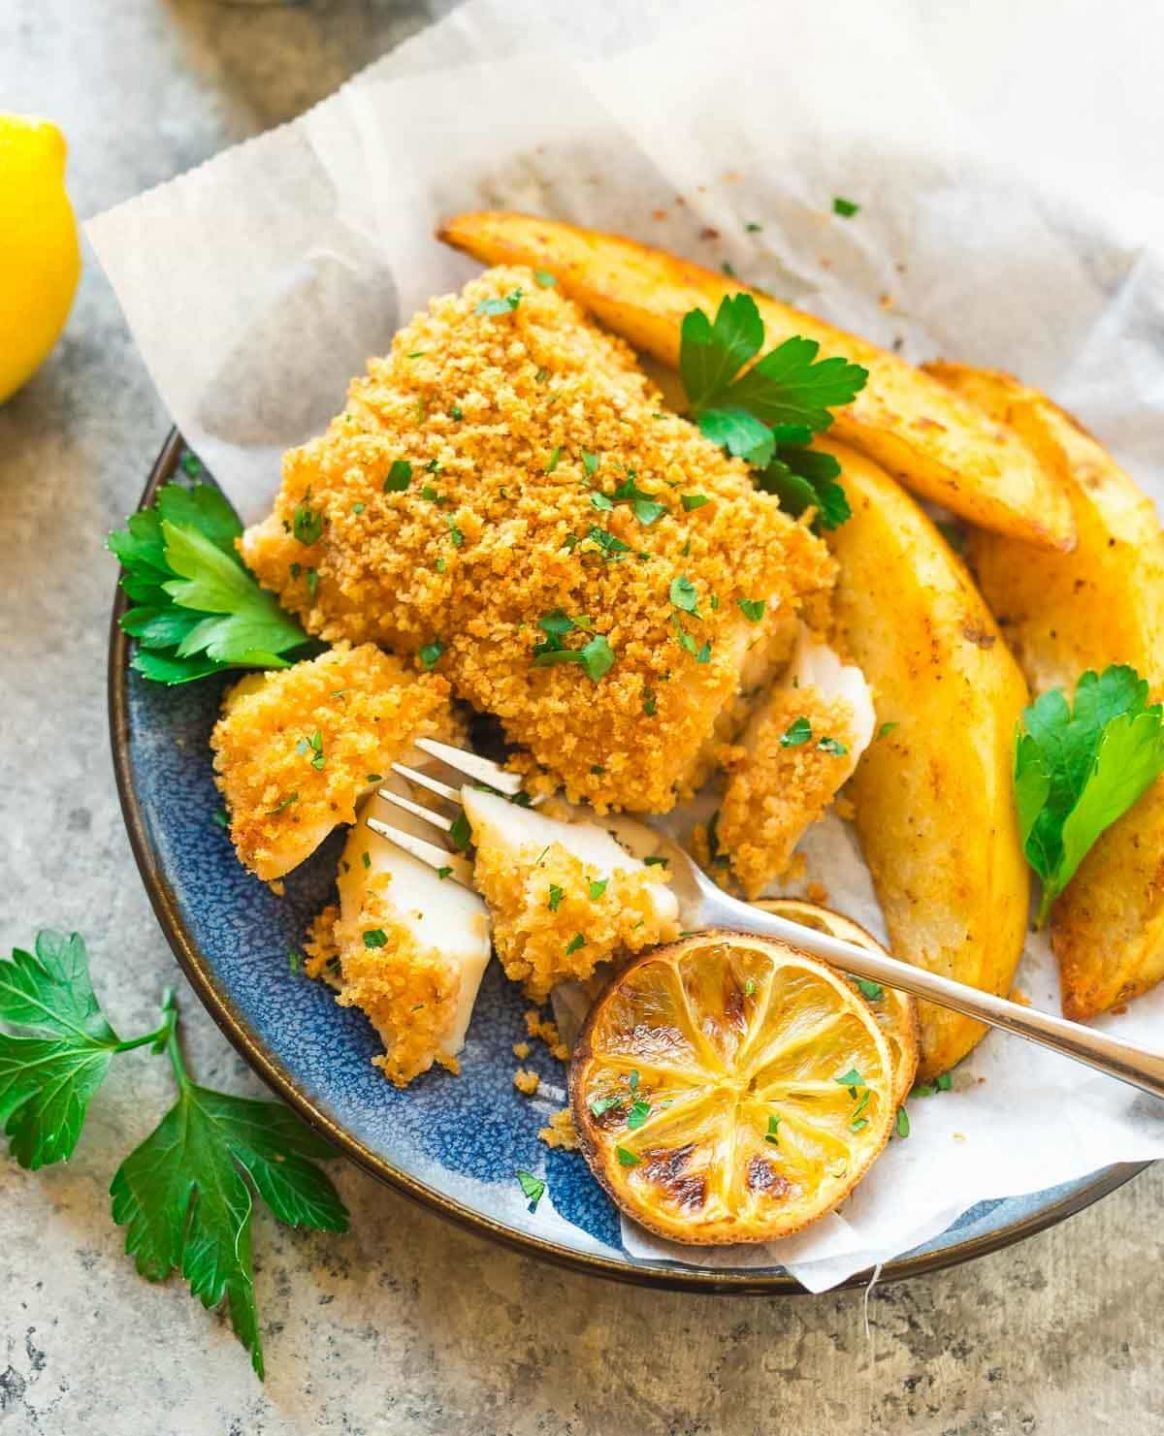 Baked Fish and Chips - Recipes Fish Healthy